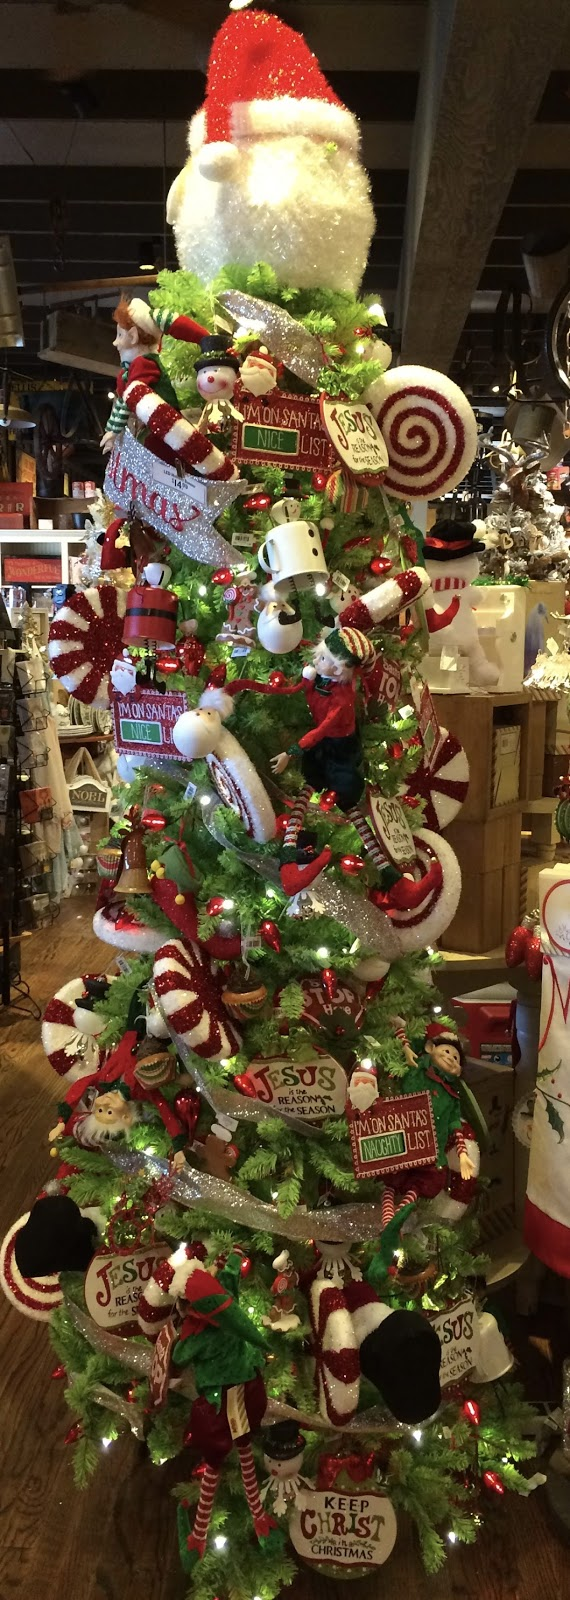 cracker barrel yesterday and when i walked into the store i thought i was in a winter wonderland they did have some autumnal displays but christmas